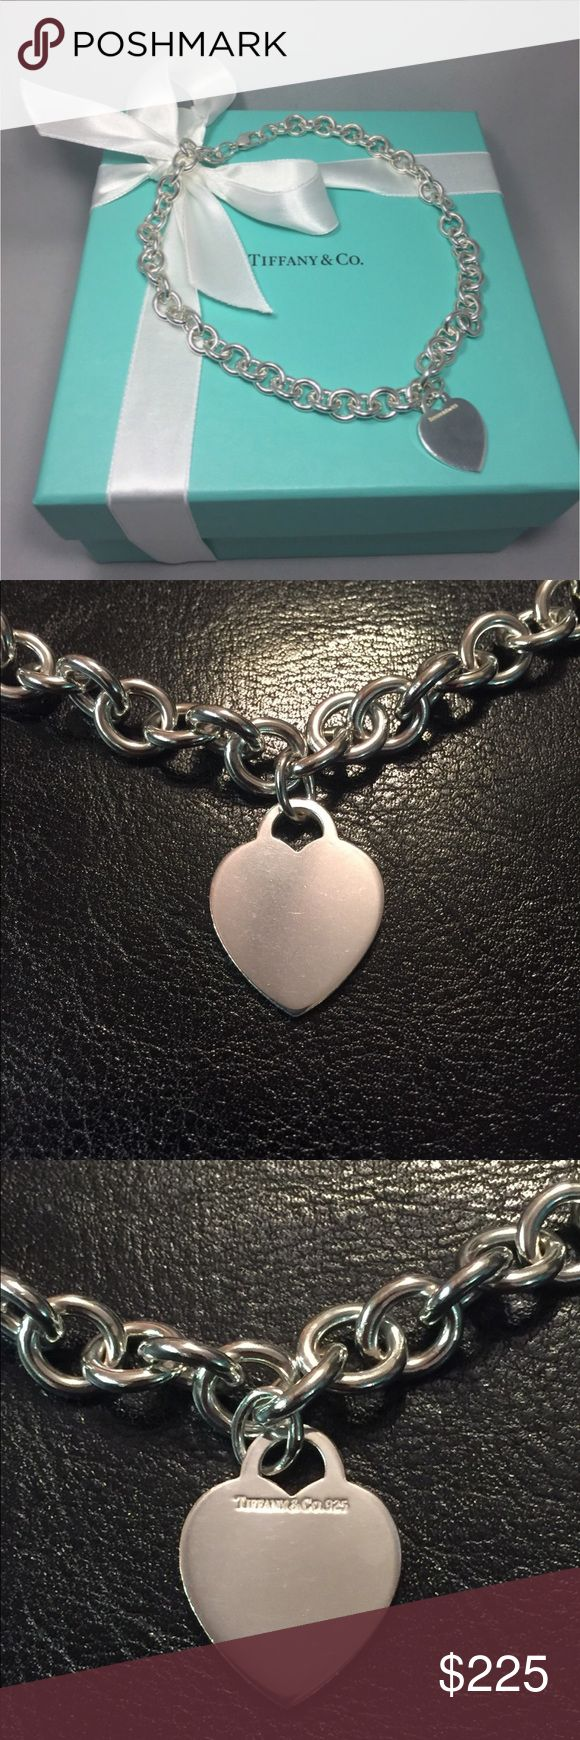 Authentic Pre loved Tiffany Heart Necklace Pre Loved Authentic Tiffany Heart Necklace. Freshly polished and maintained by Tiffany&Co. this is perfect for your Tiffany lover. Say I love you this season with Tiffany and know your going to bring a smile to her face and make a memory unforgettable. Tiffany & Co. Jewelry Necklaces